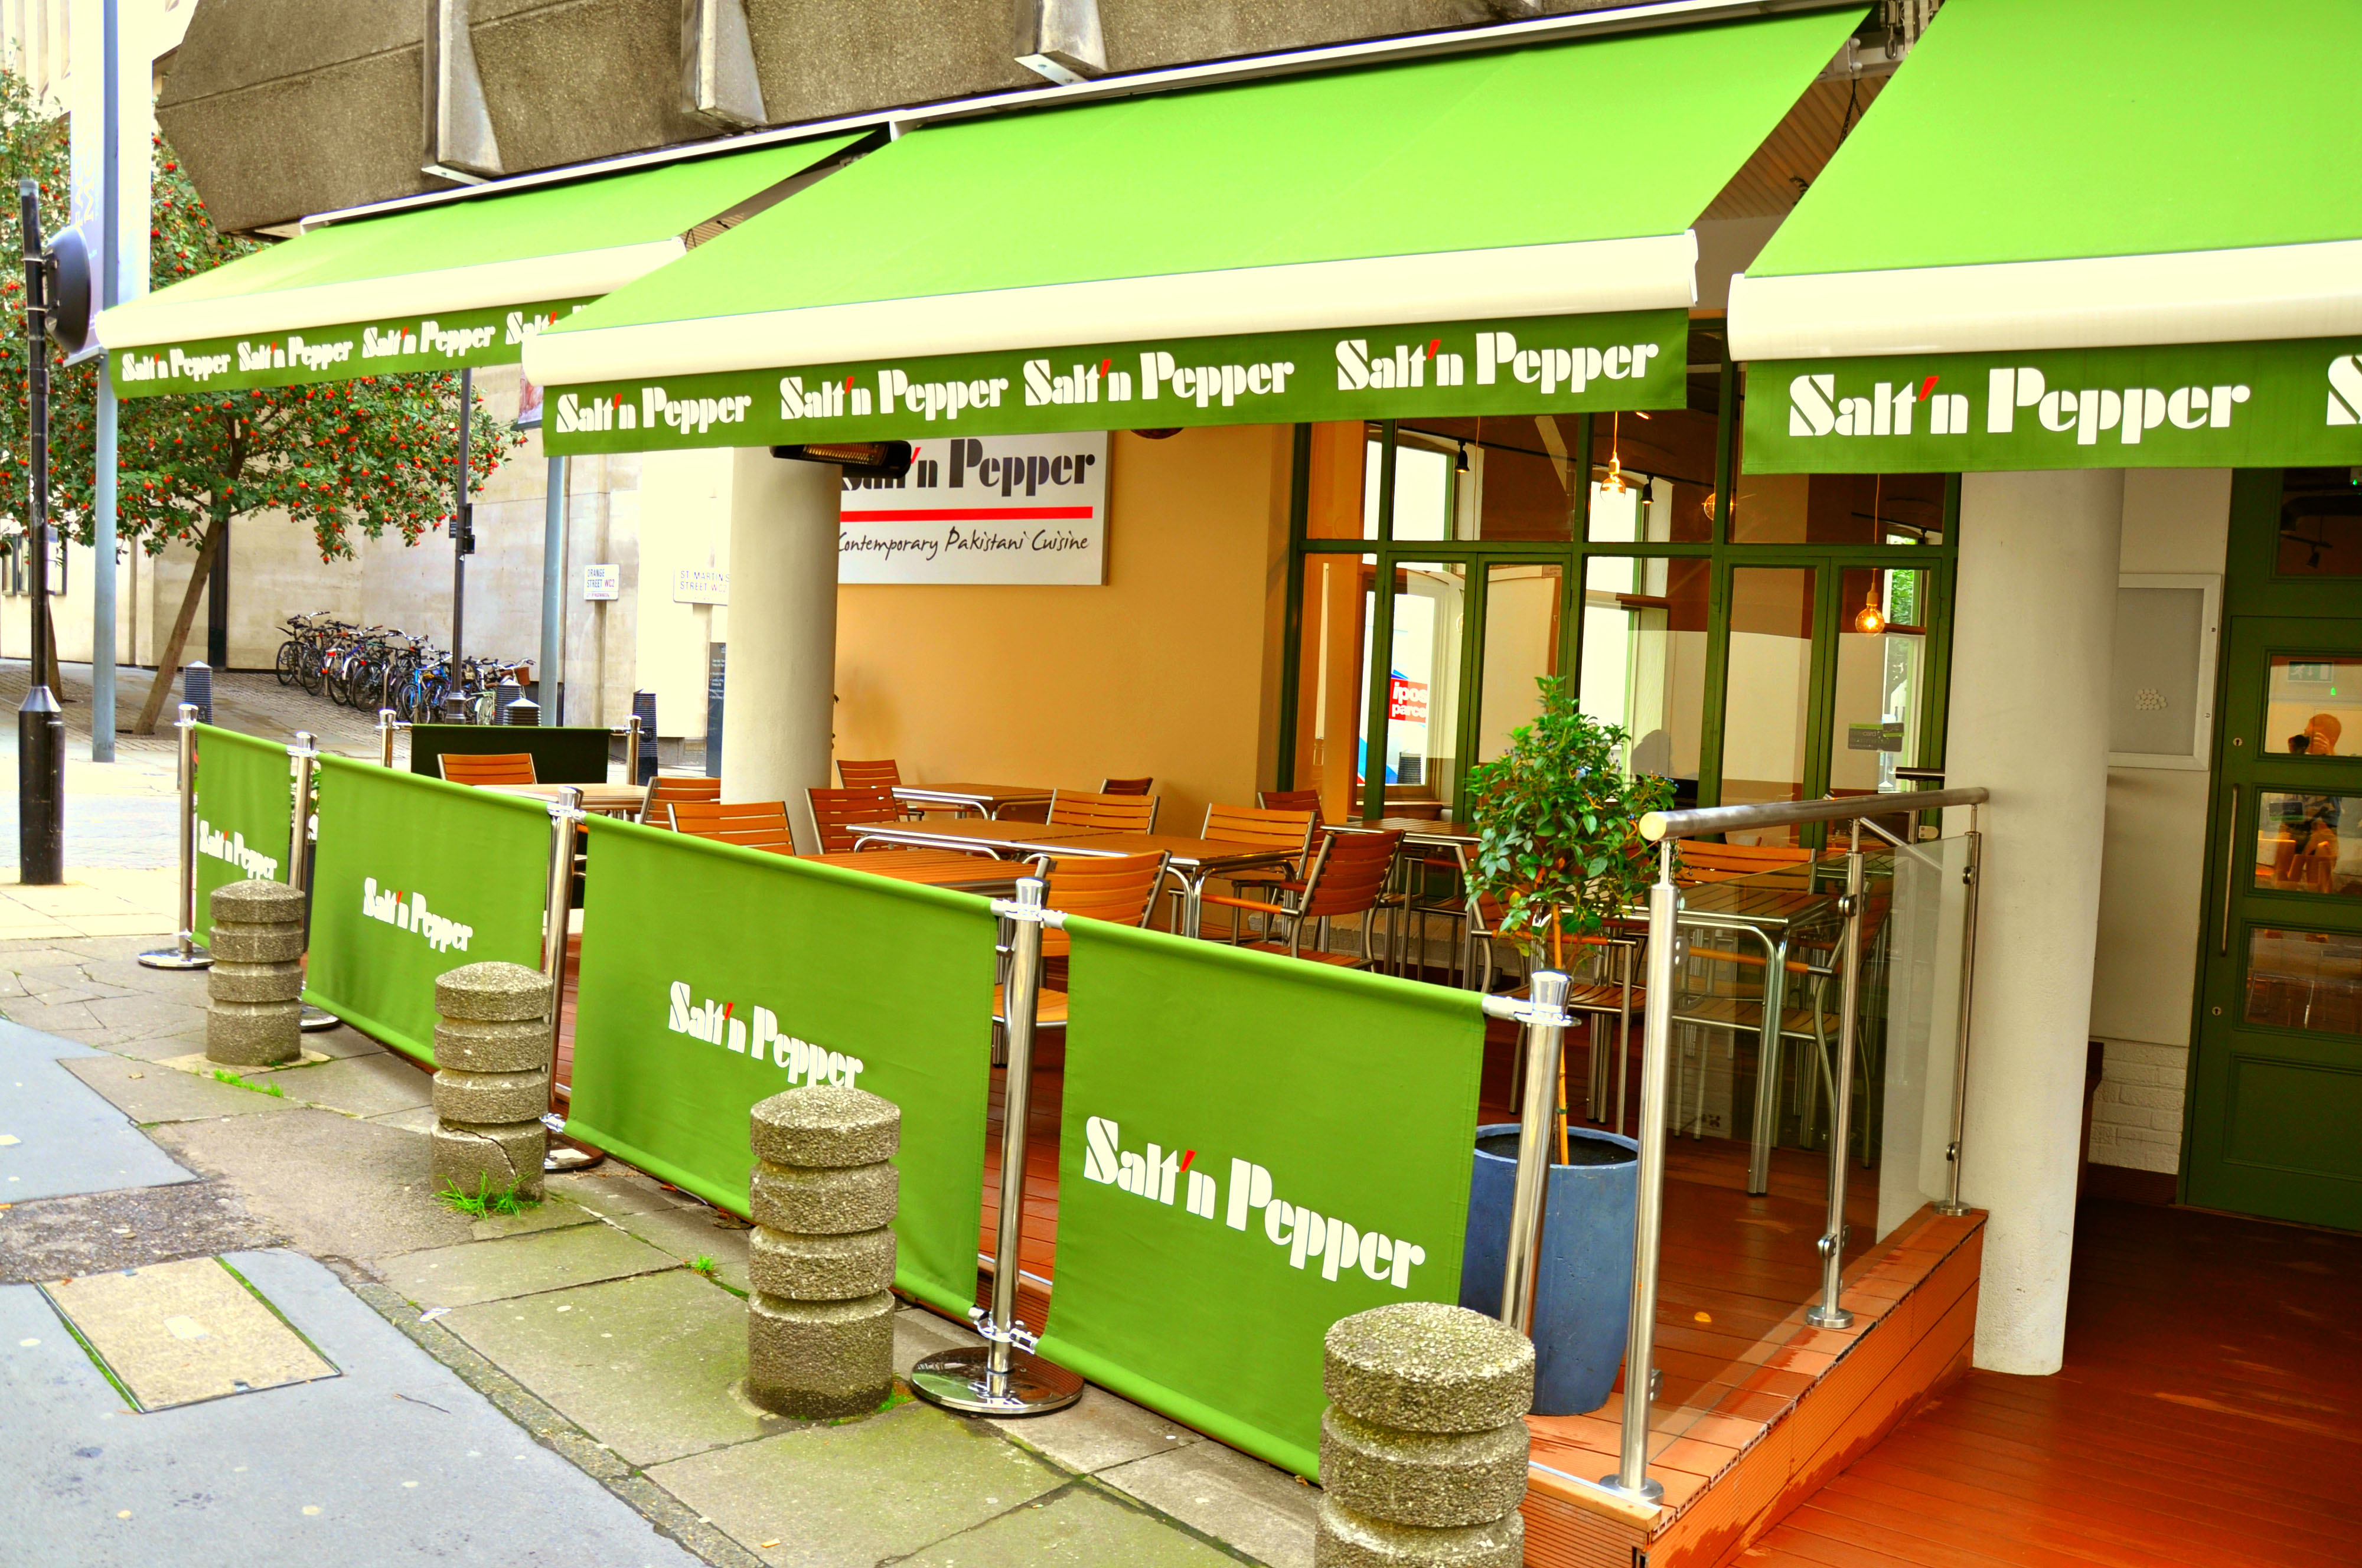 Halal Food Places In Leicester Square